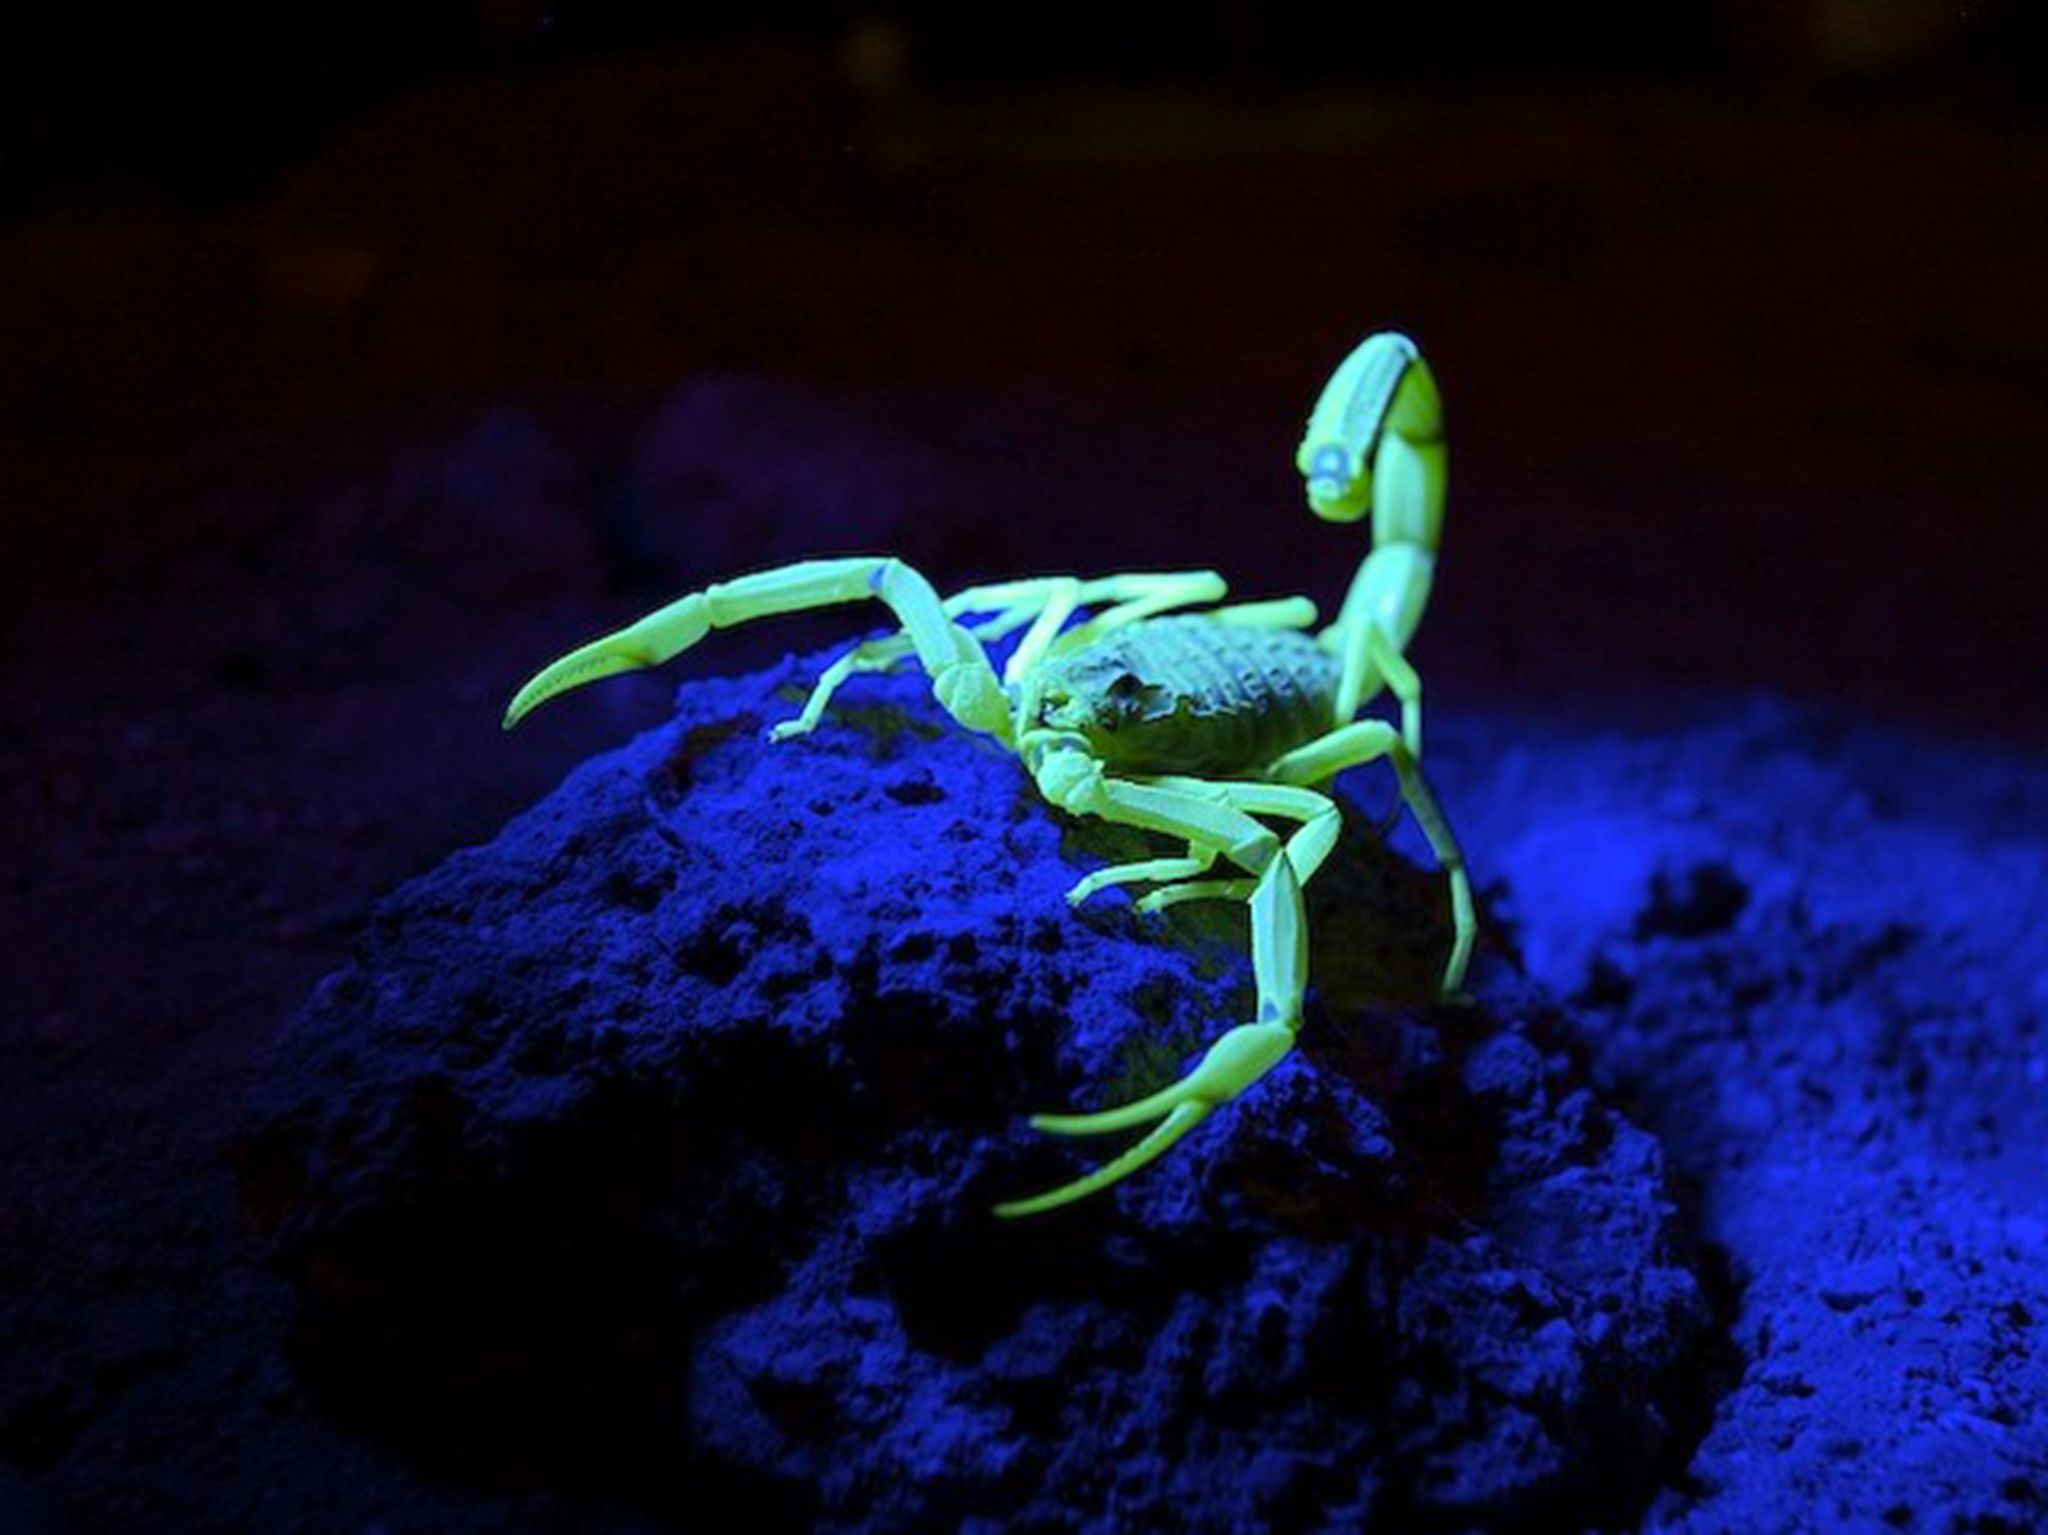 The death stalker scorpion glows underneath black light. This image is from Bite, Sting, Kill. [Photo of the day - April 2017]